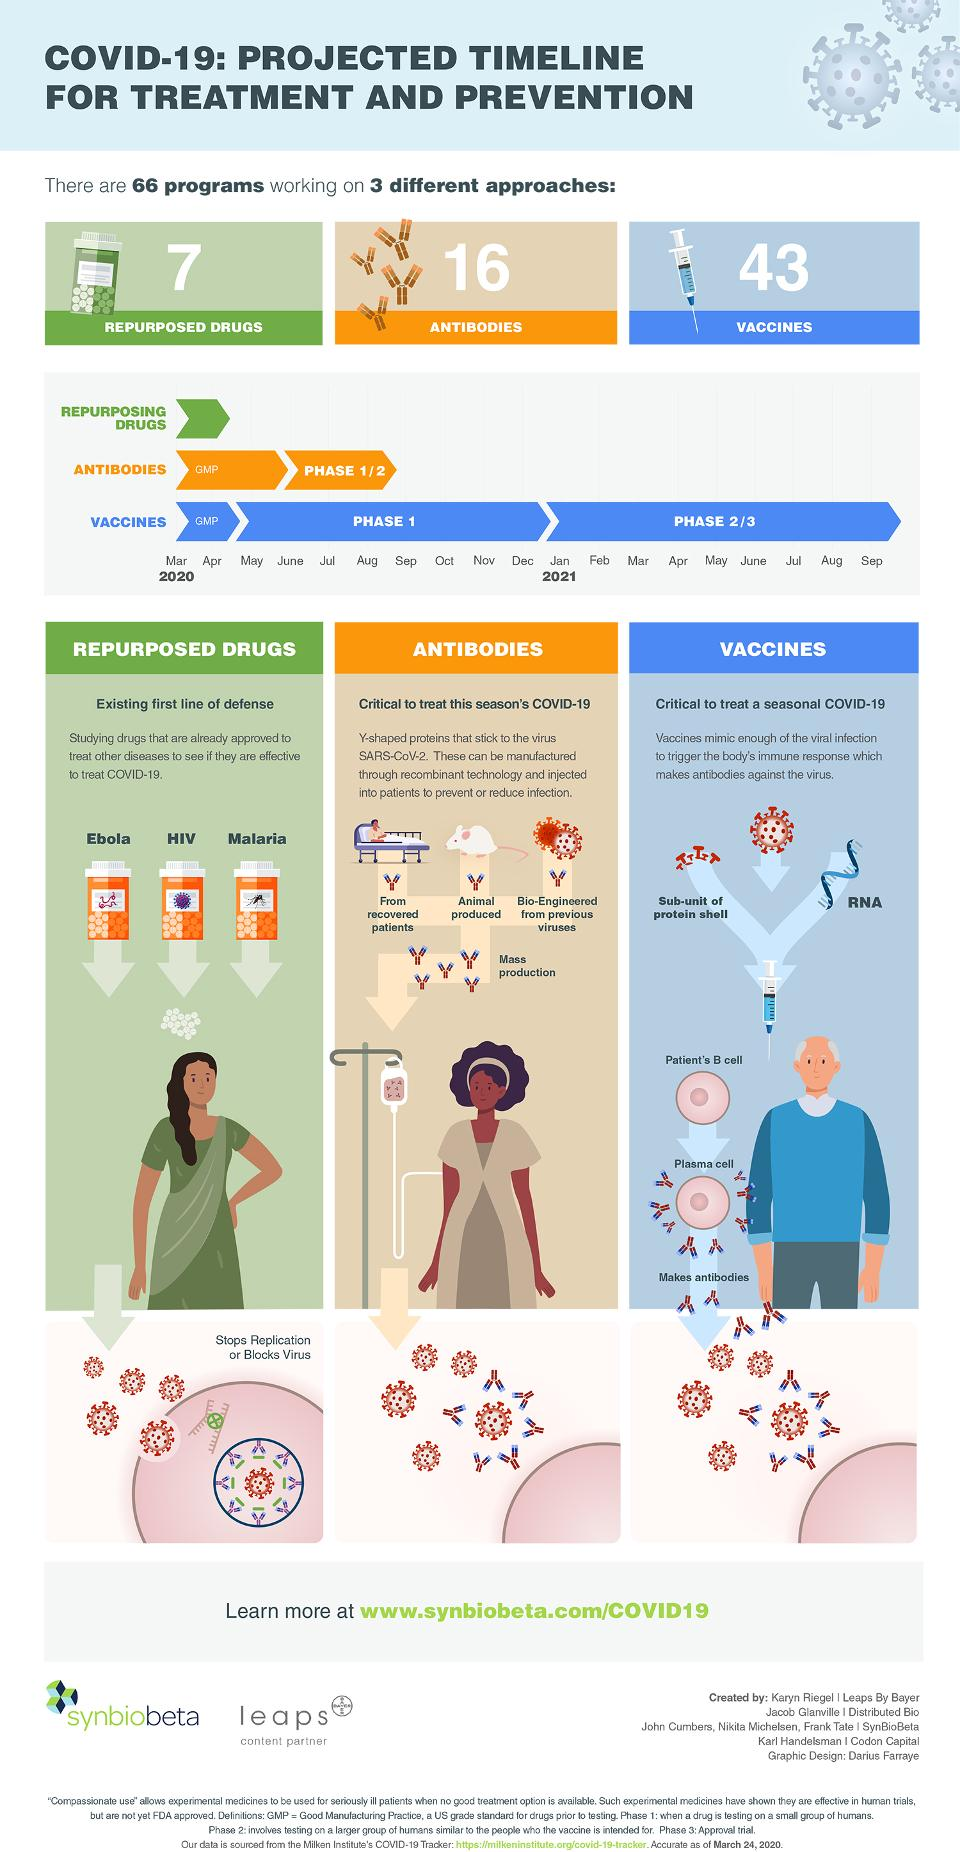 Timeline Shows 3 Paths To COVID-19 Treatment And Prevention #infographic